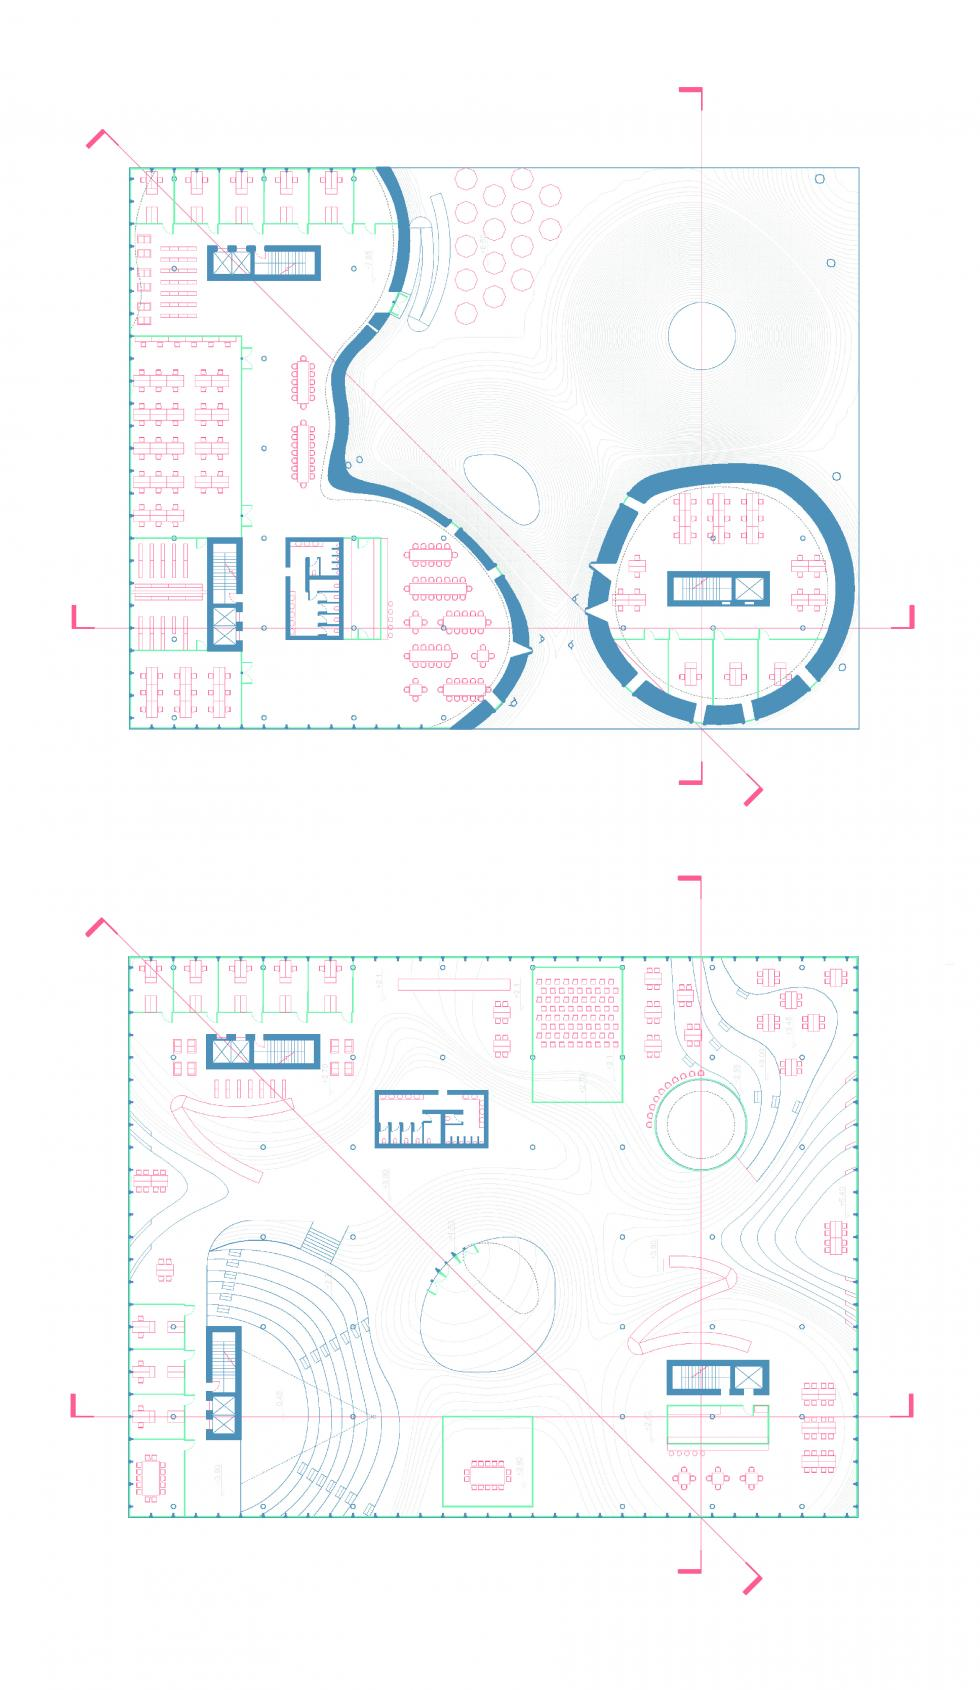 Square shape plans with wavy cuts with red furniture.